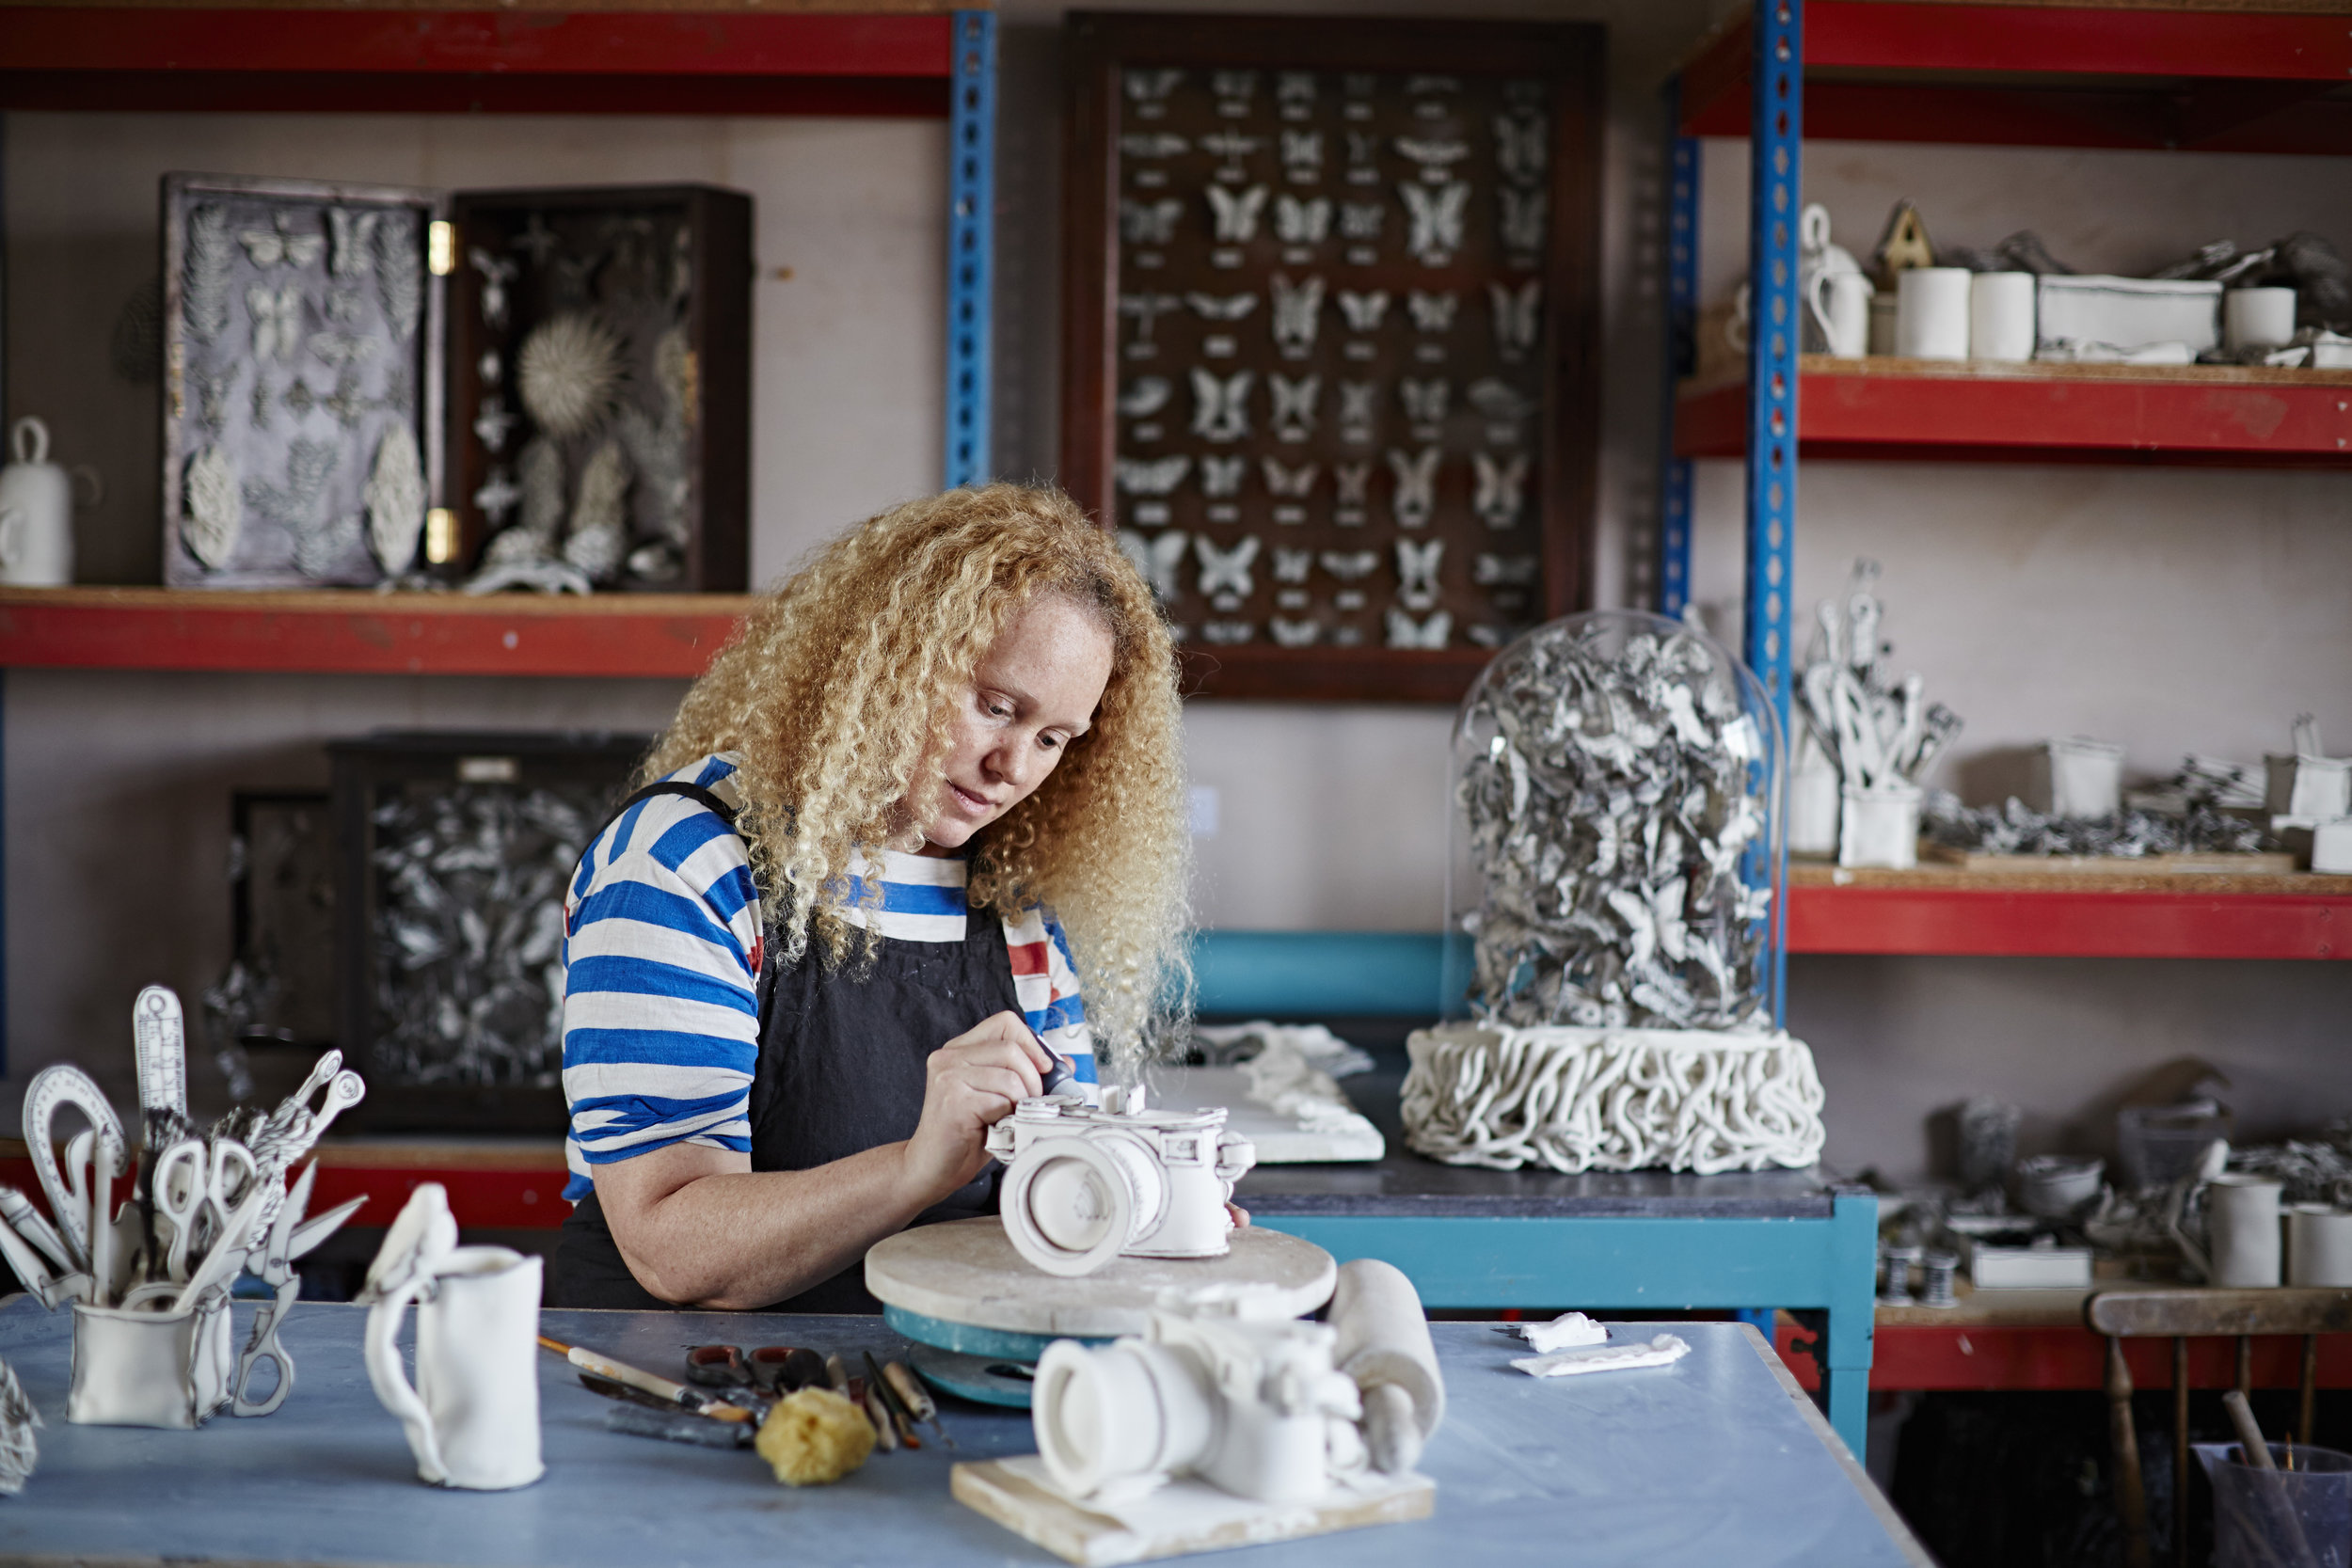 Katharine Morling in the Studio - Image by Alun Callender for Cockpit Arts